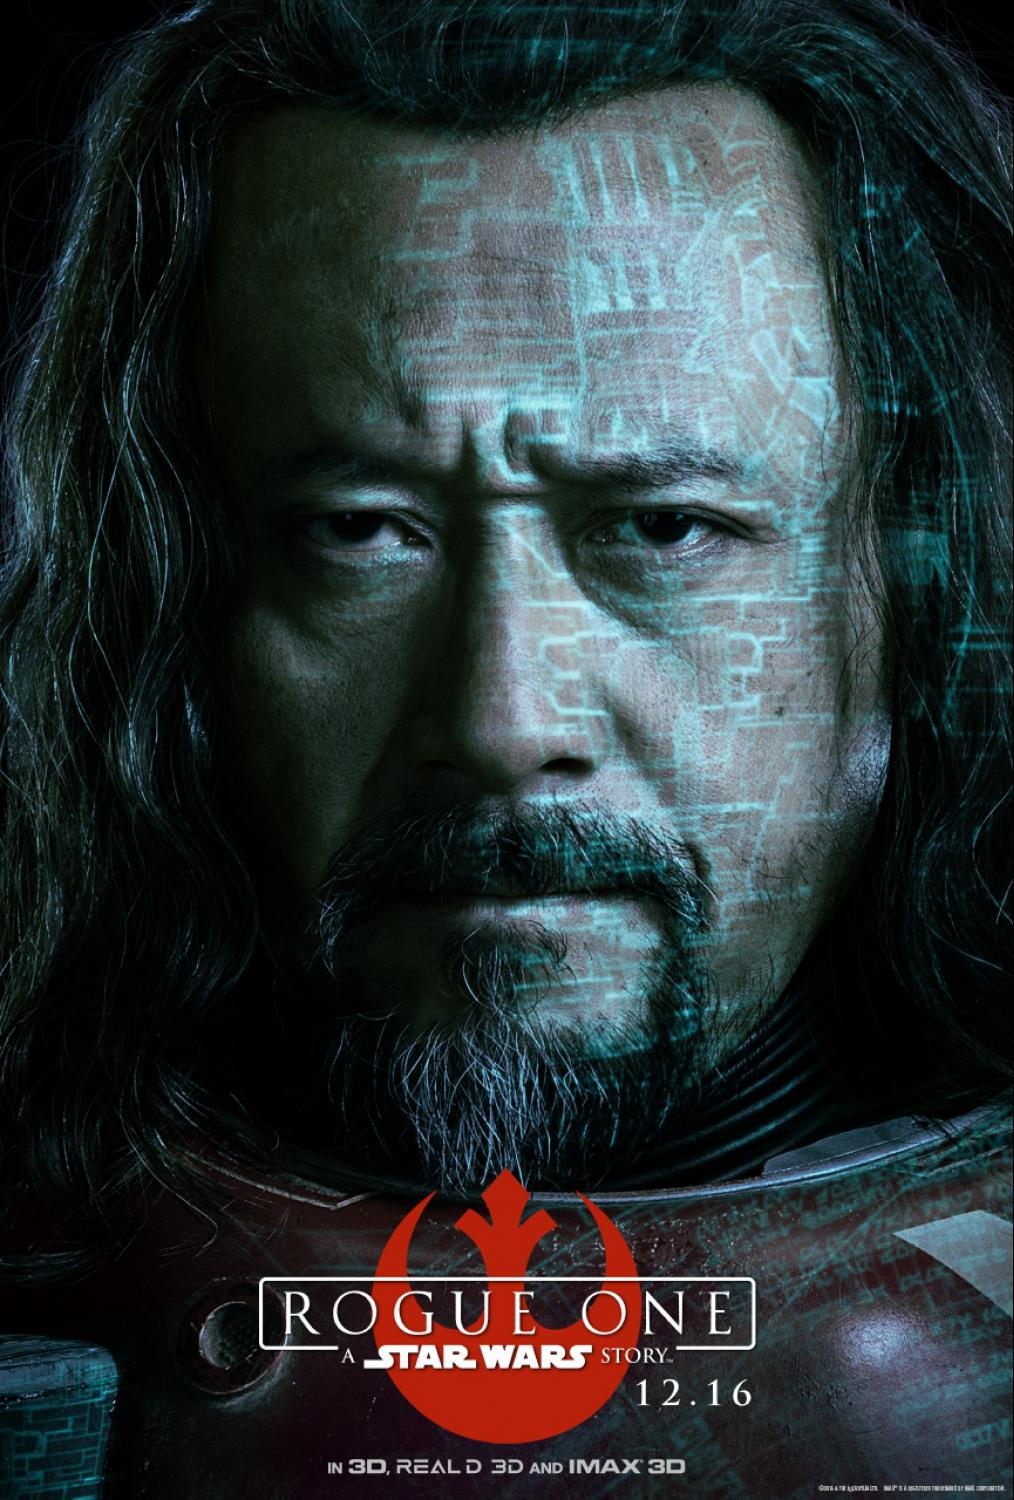 Baze Malbus - ROGUE ONE: A STAR WARS STORY